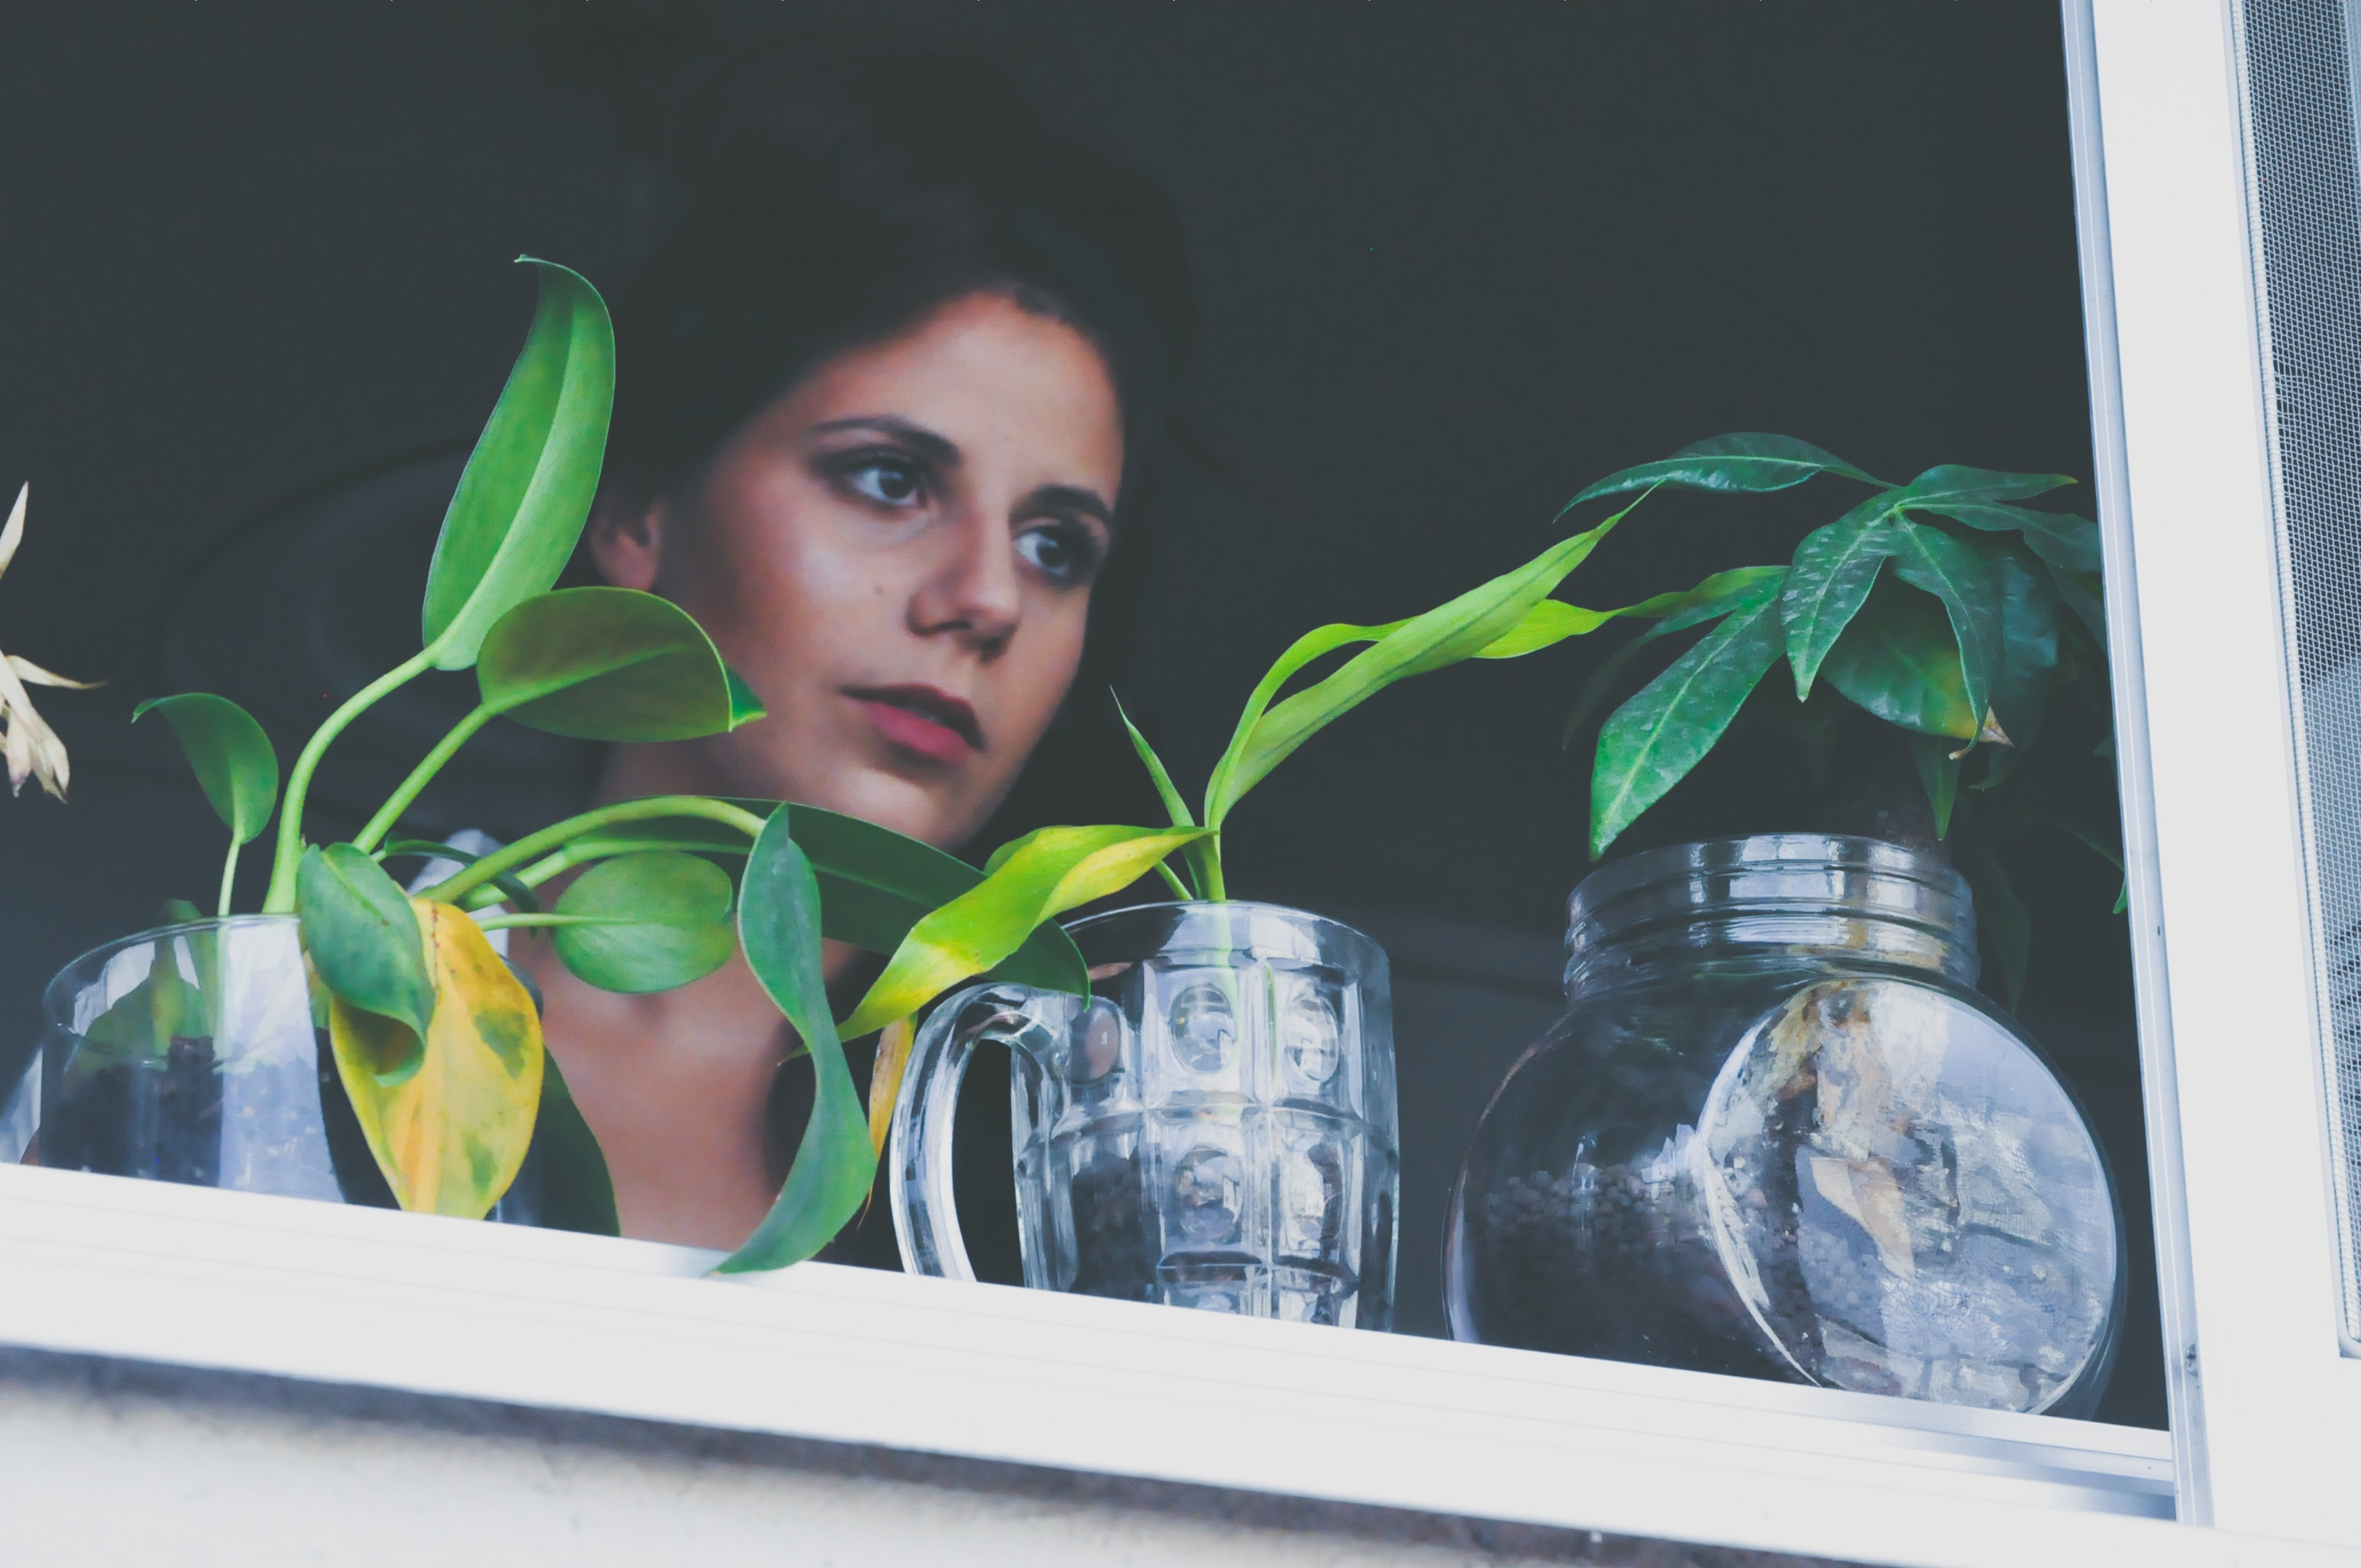 A woman staring out a window with plants on the sill.